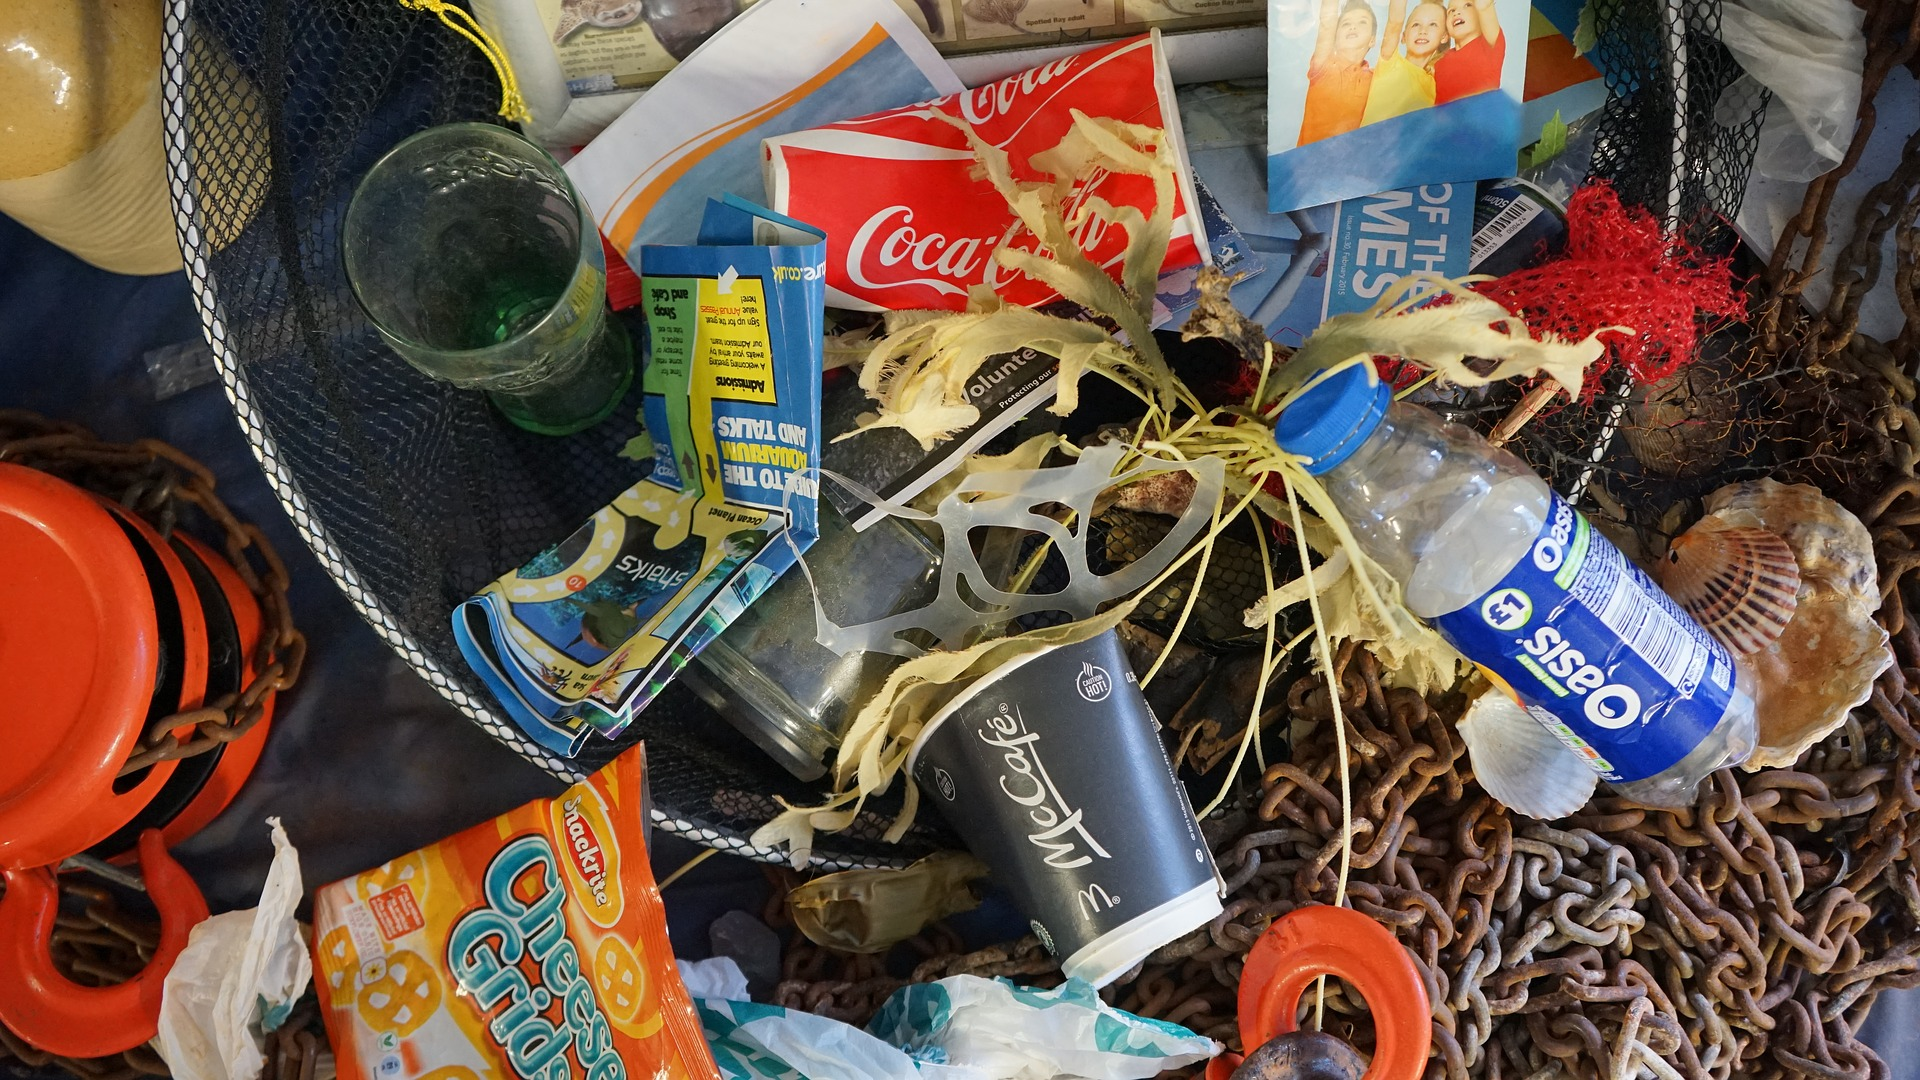 Looking for a New Year's Resolution? Shrink Your Plastic Footprint!